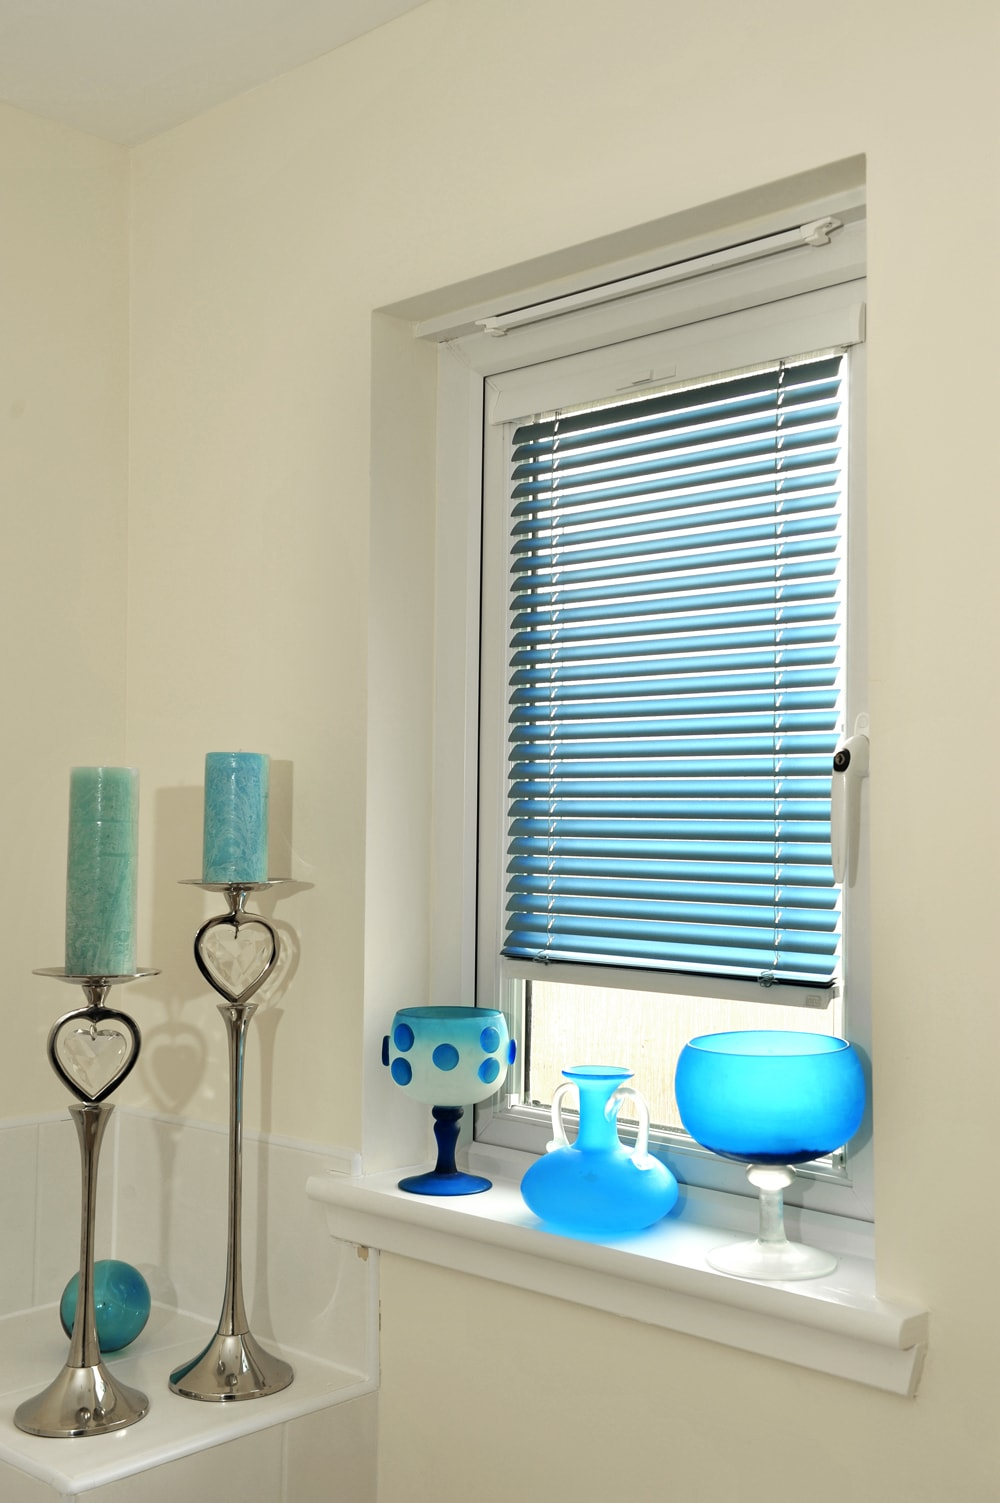 Venetian blinds by Eclipse